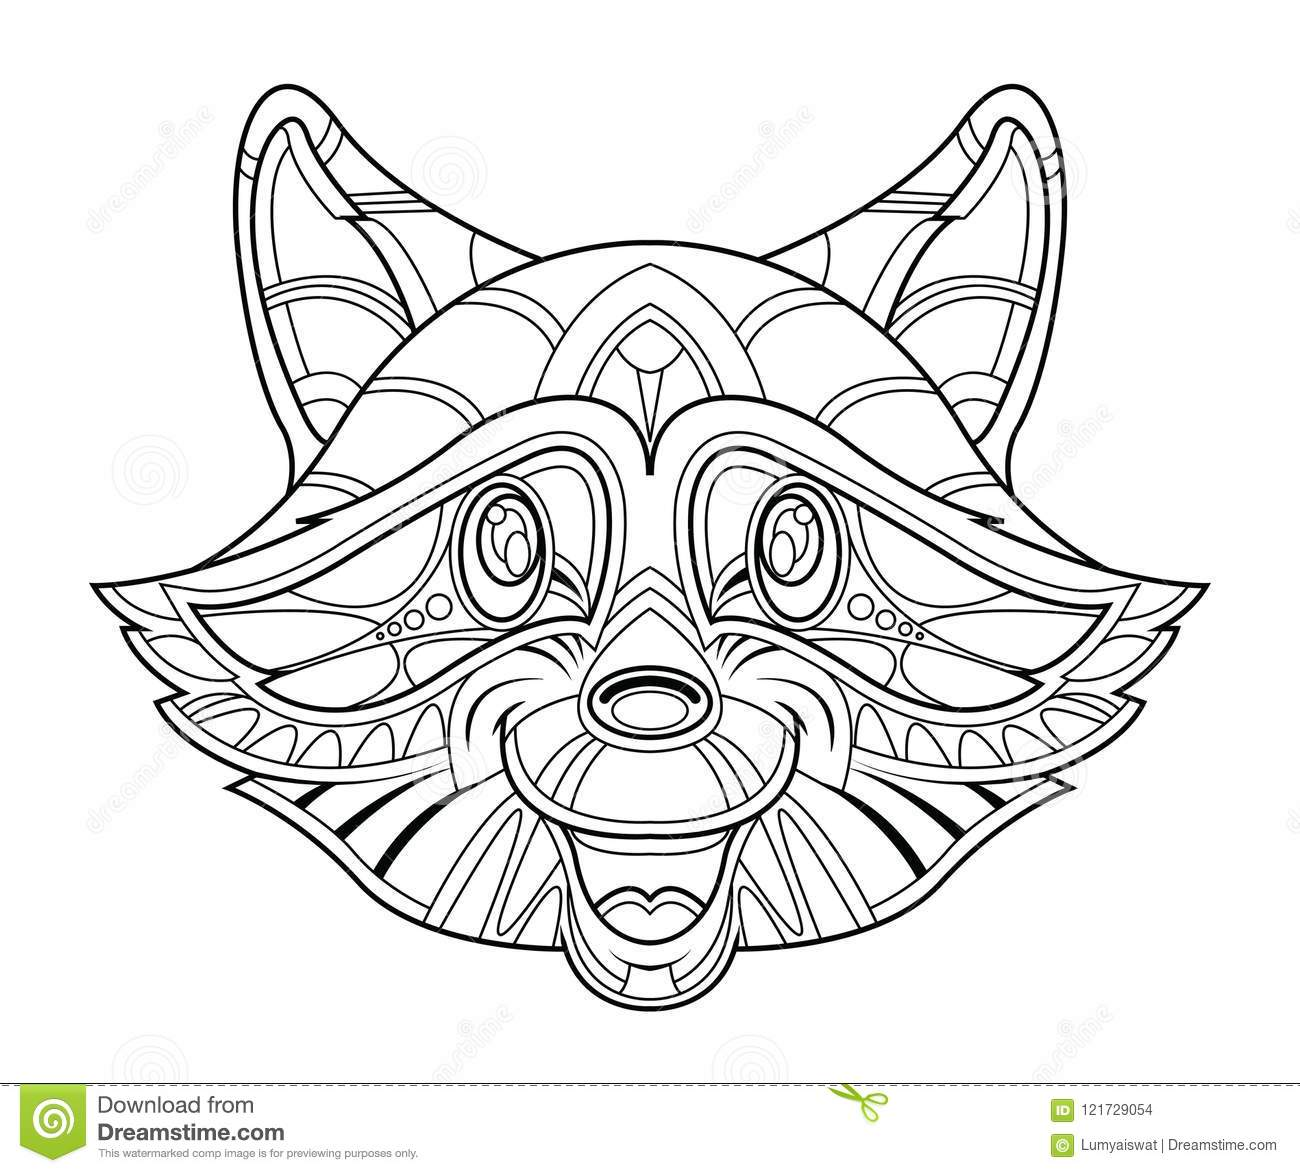 Raccoon Head Coloring Page Stock Vector Illustration Of